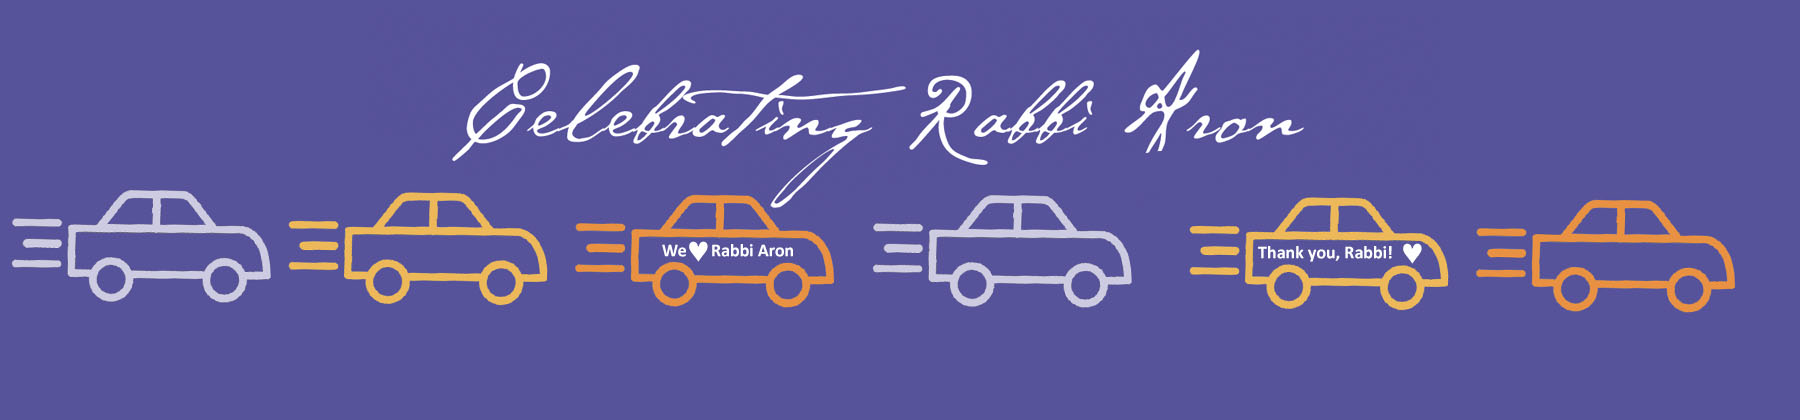 Banner Image for Cancelled - Drive By Goodbyes to Rabbi Aron